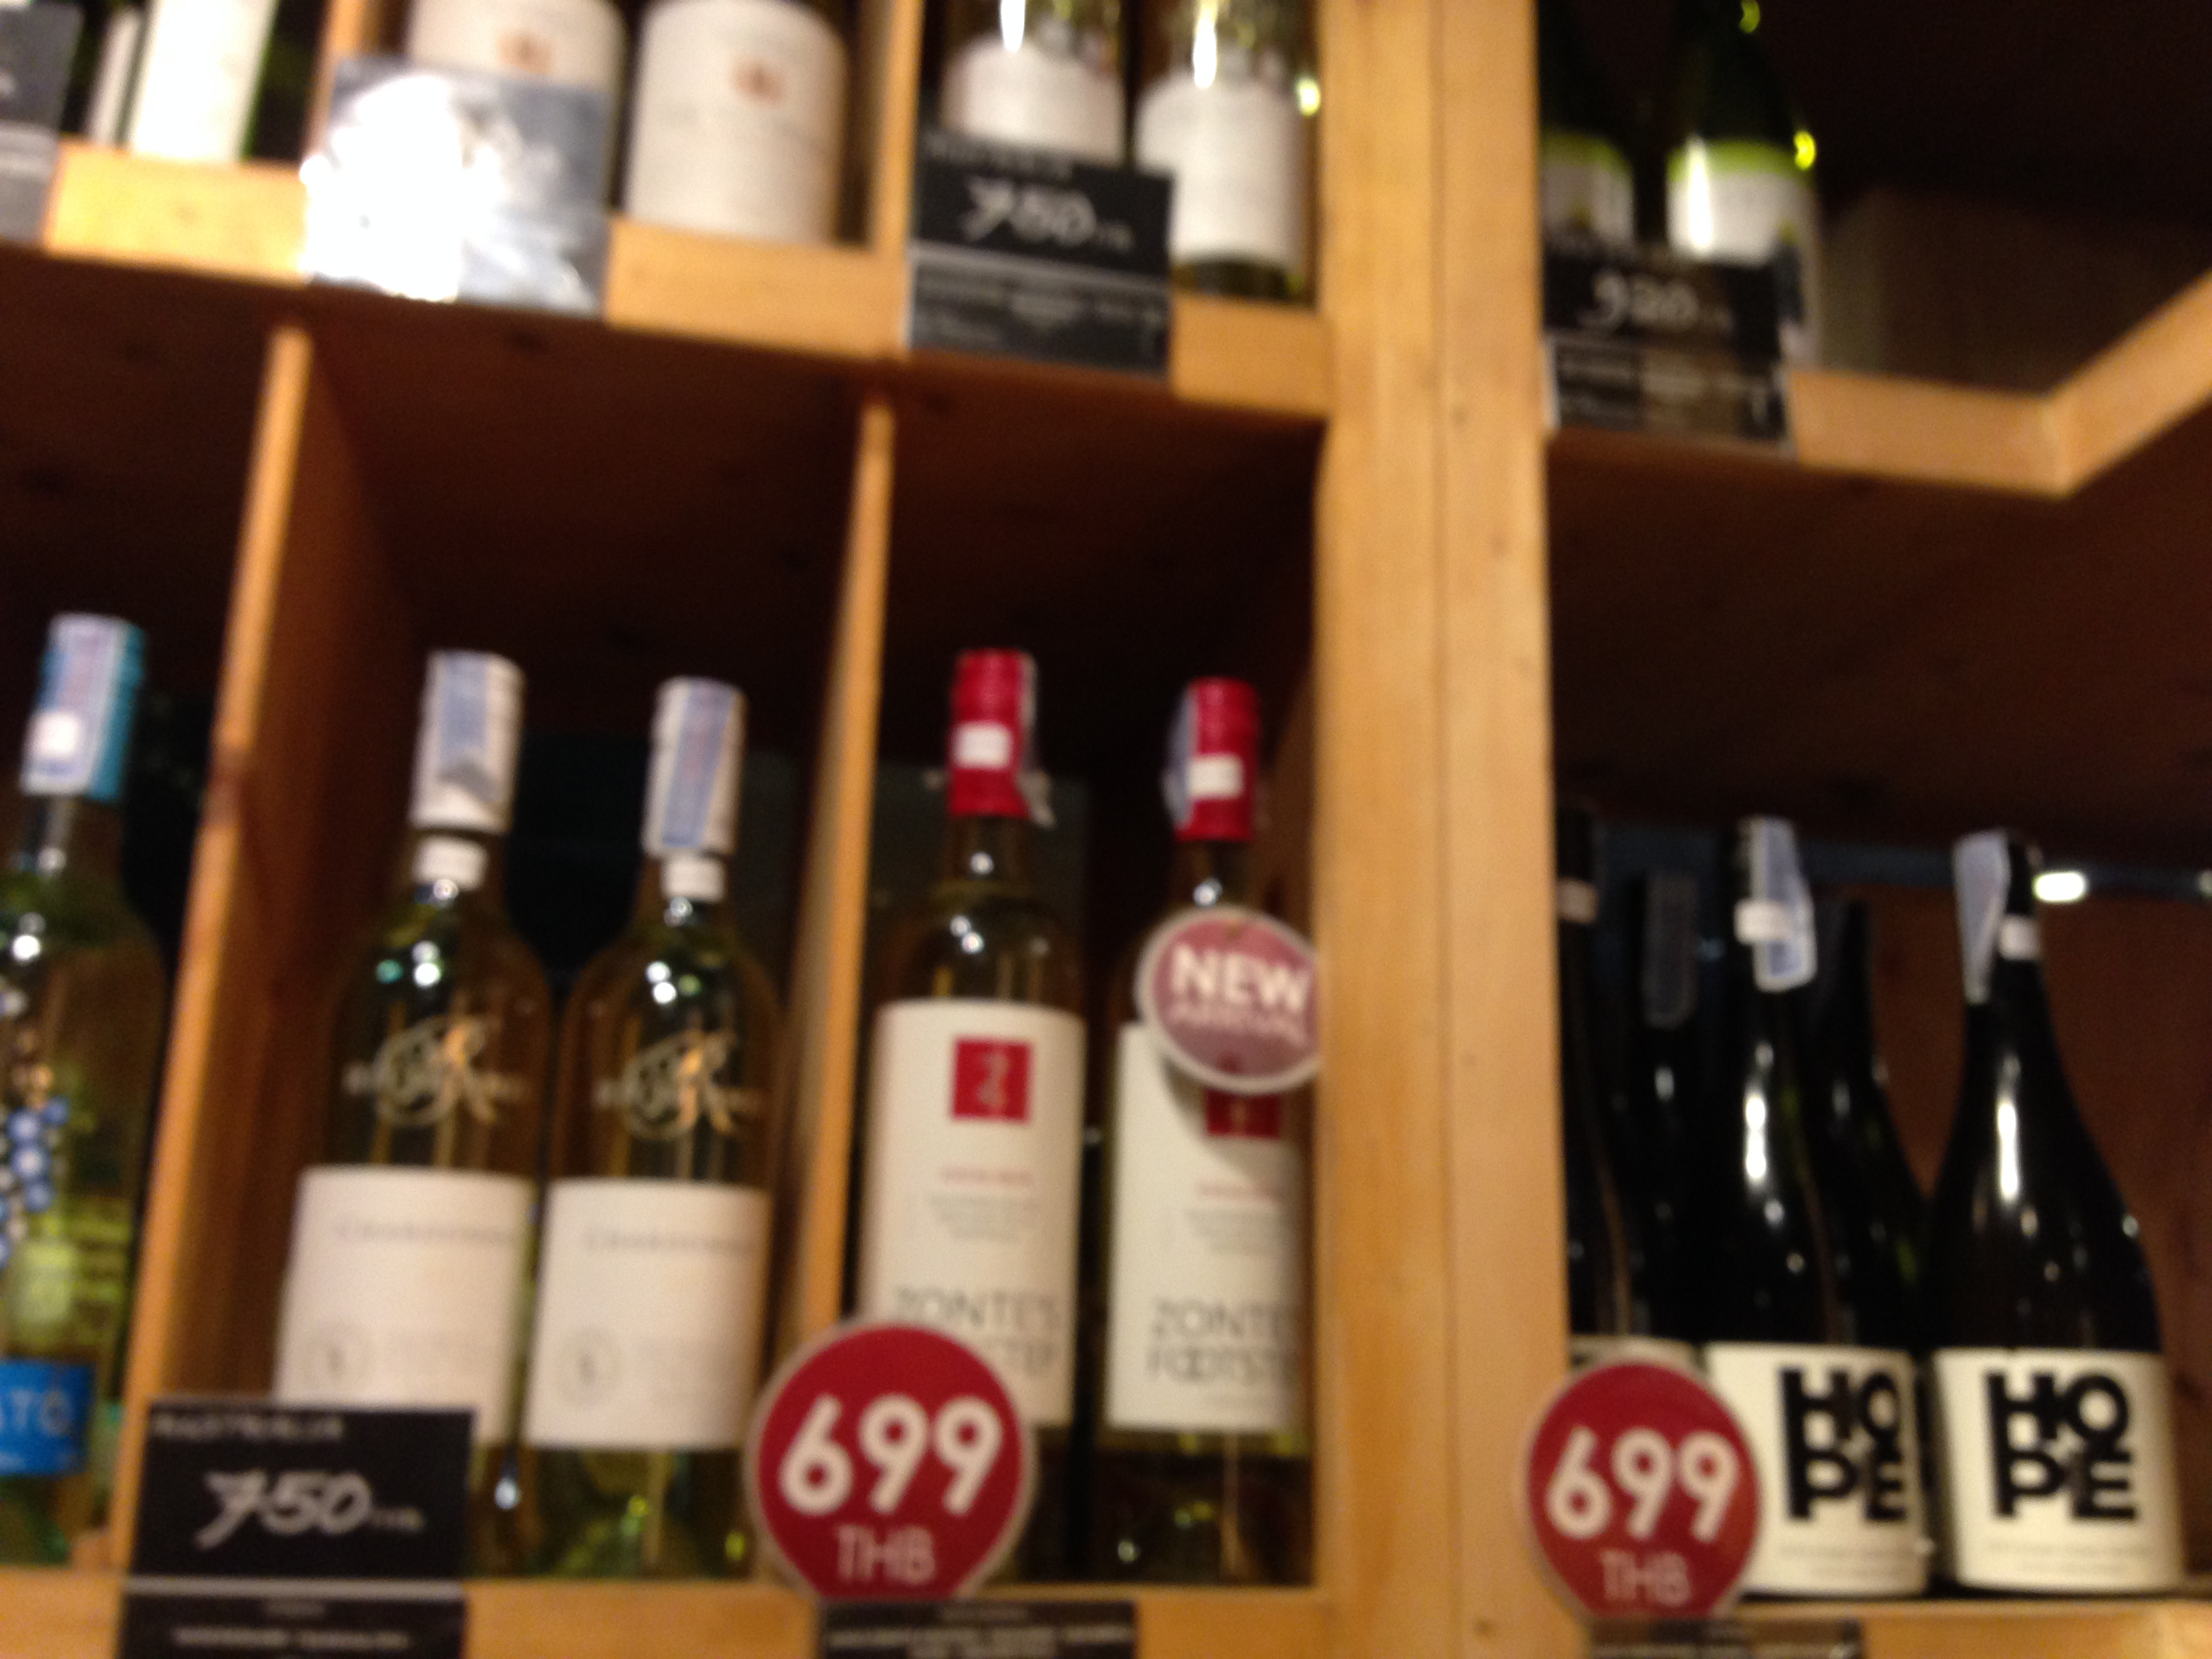 White wine bottles placed in wooden cubby holes in the Wine Connection cellar. Red and black price tags.